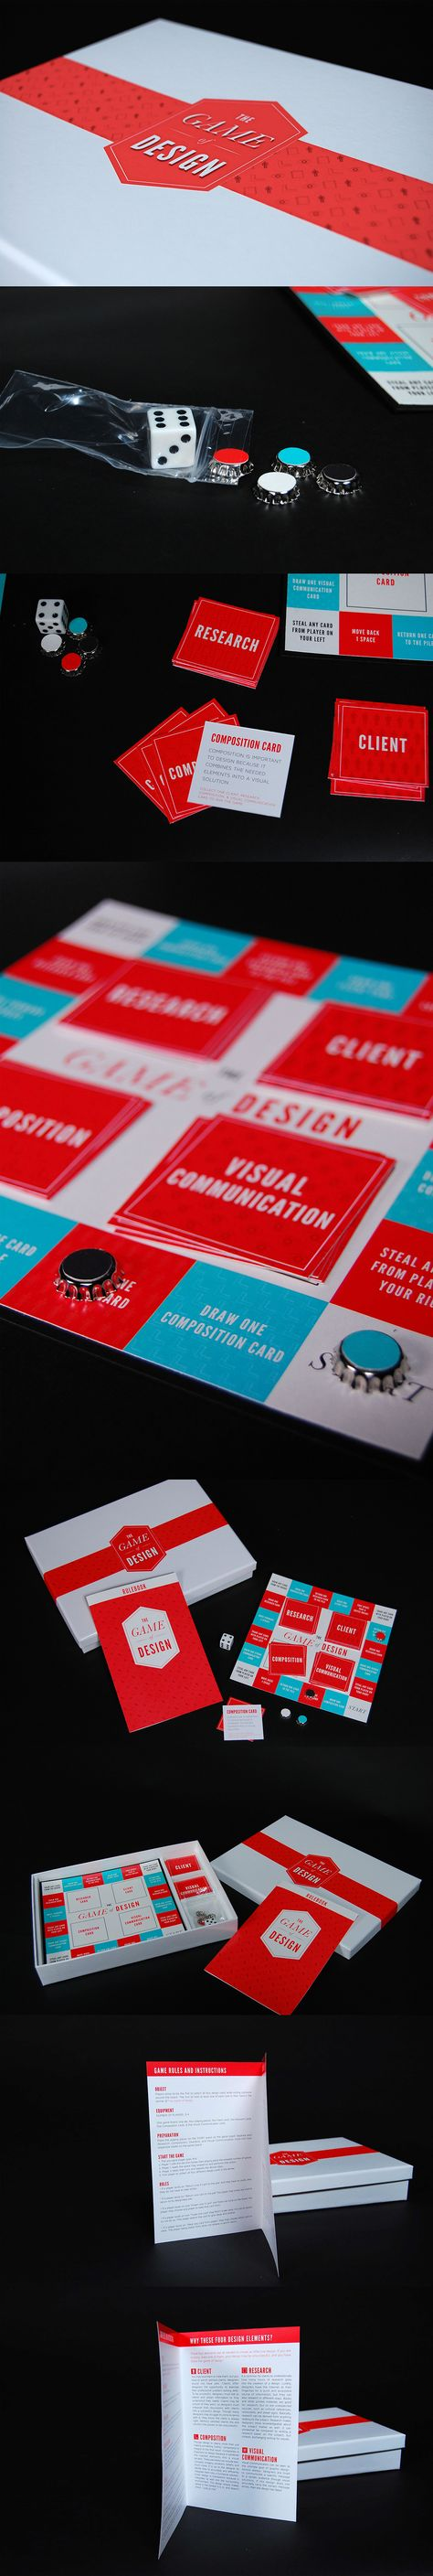 The Game of Design